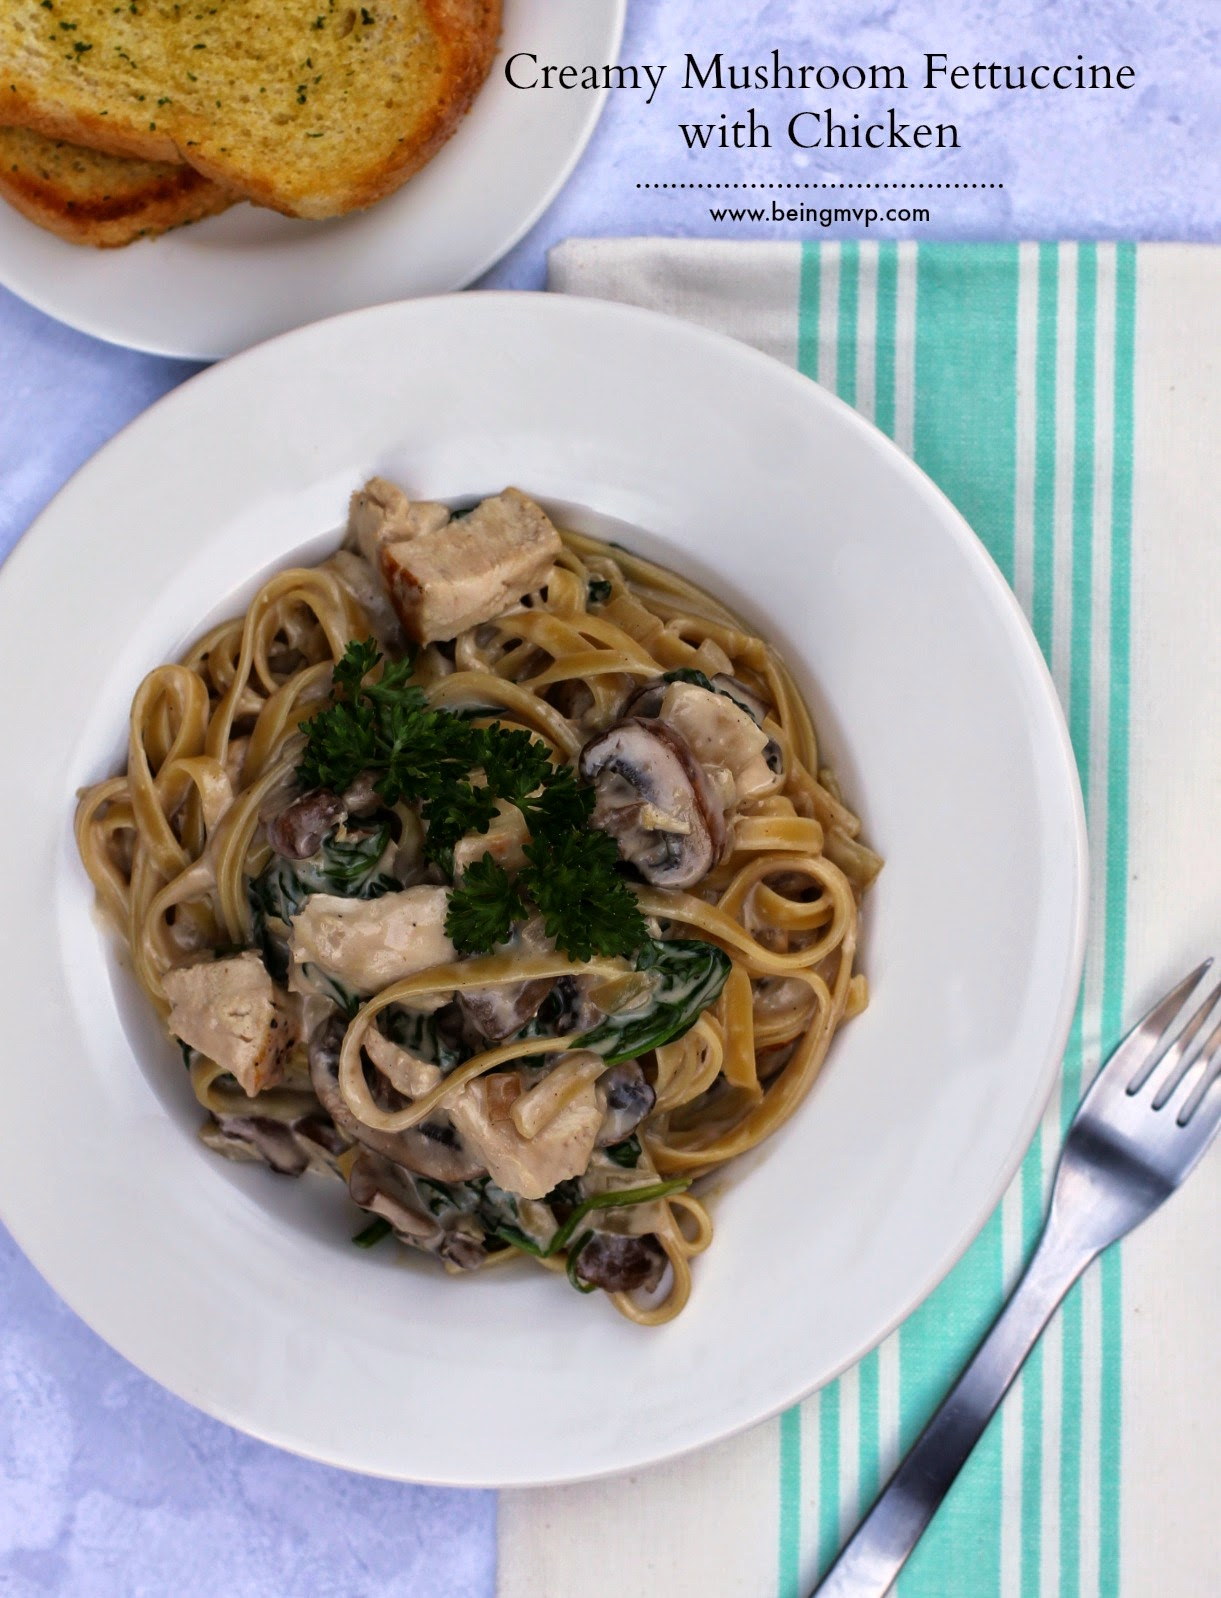 Mushrooms and chicken are a delicious classic combo for this dinner recipe!